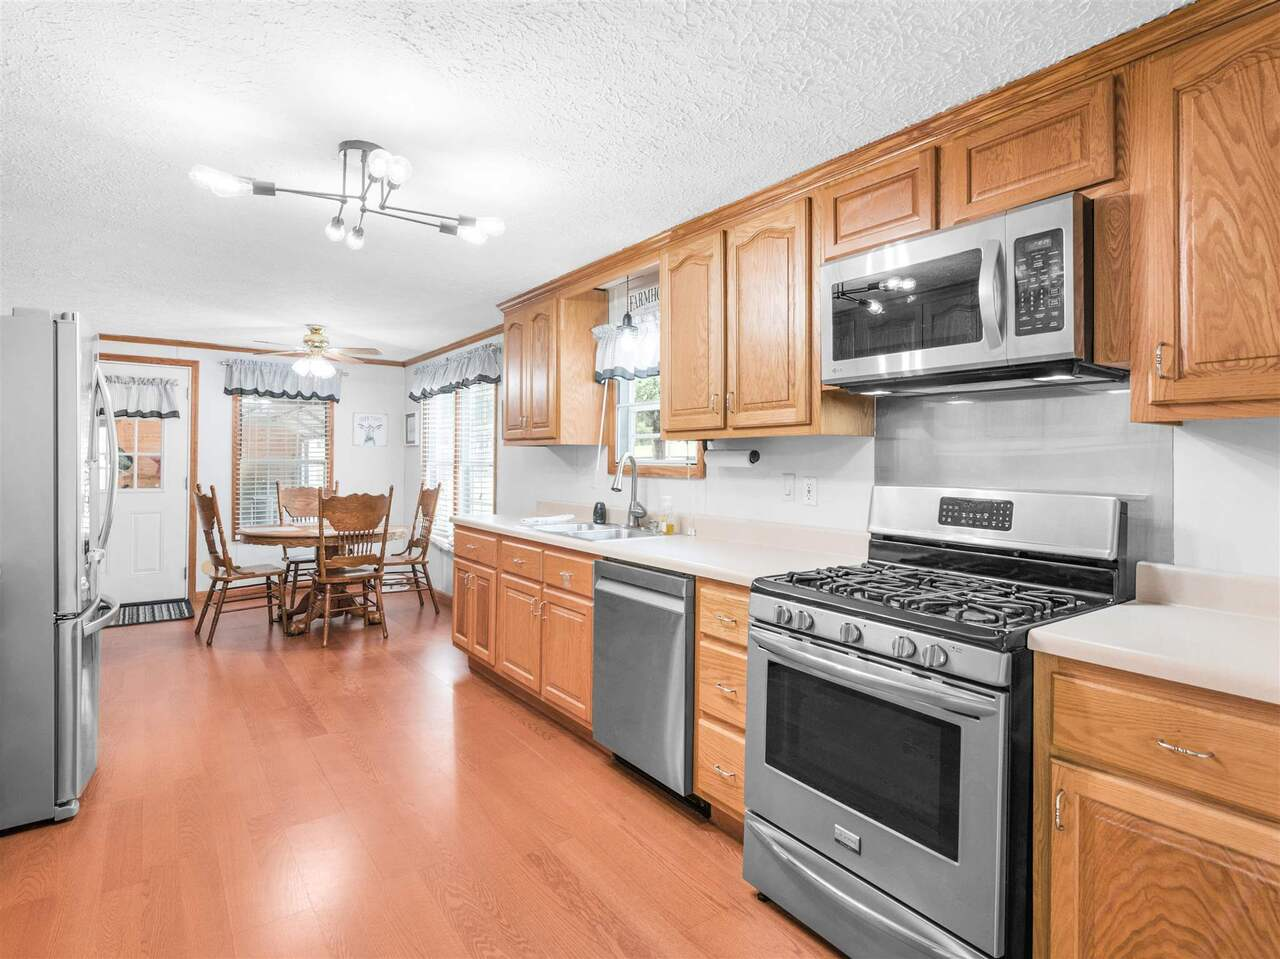 258 Country Kitchen Road Property Photo 2